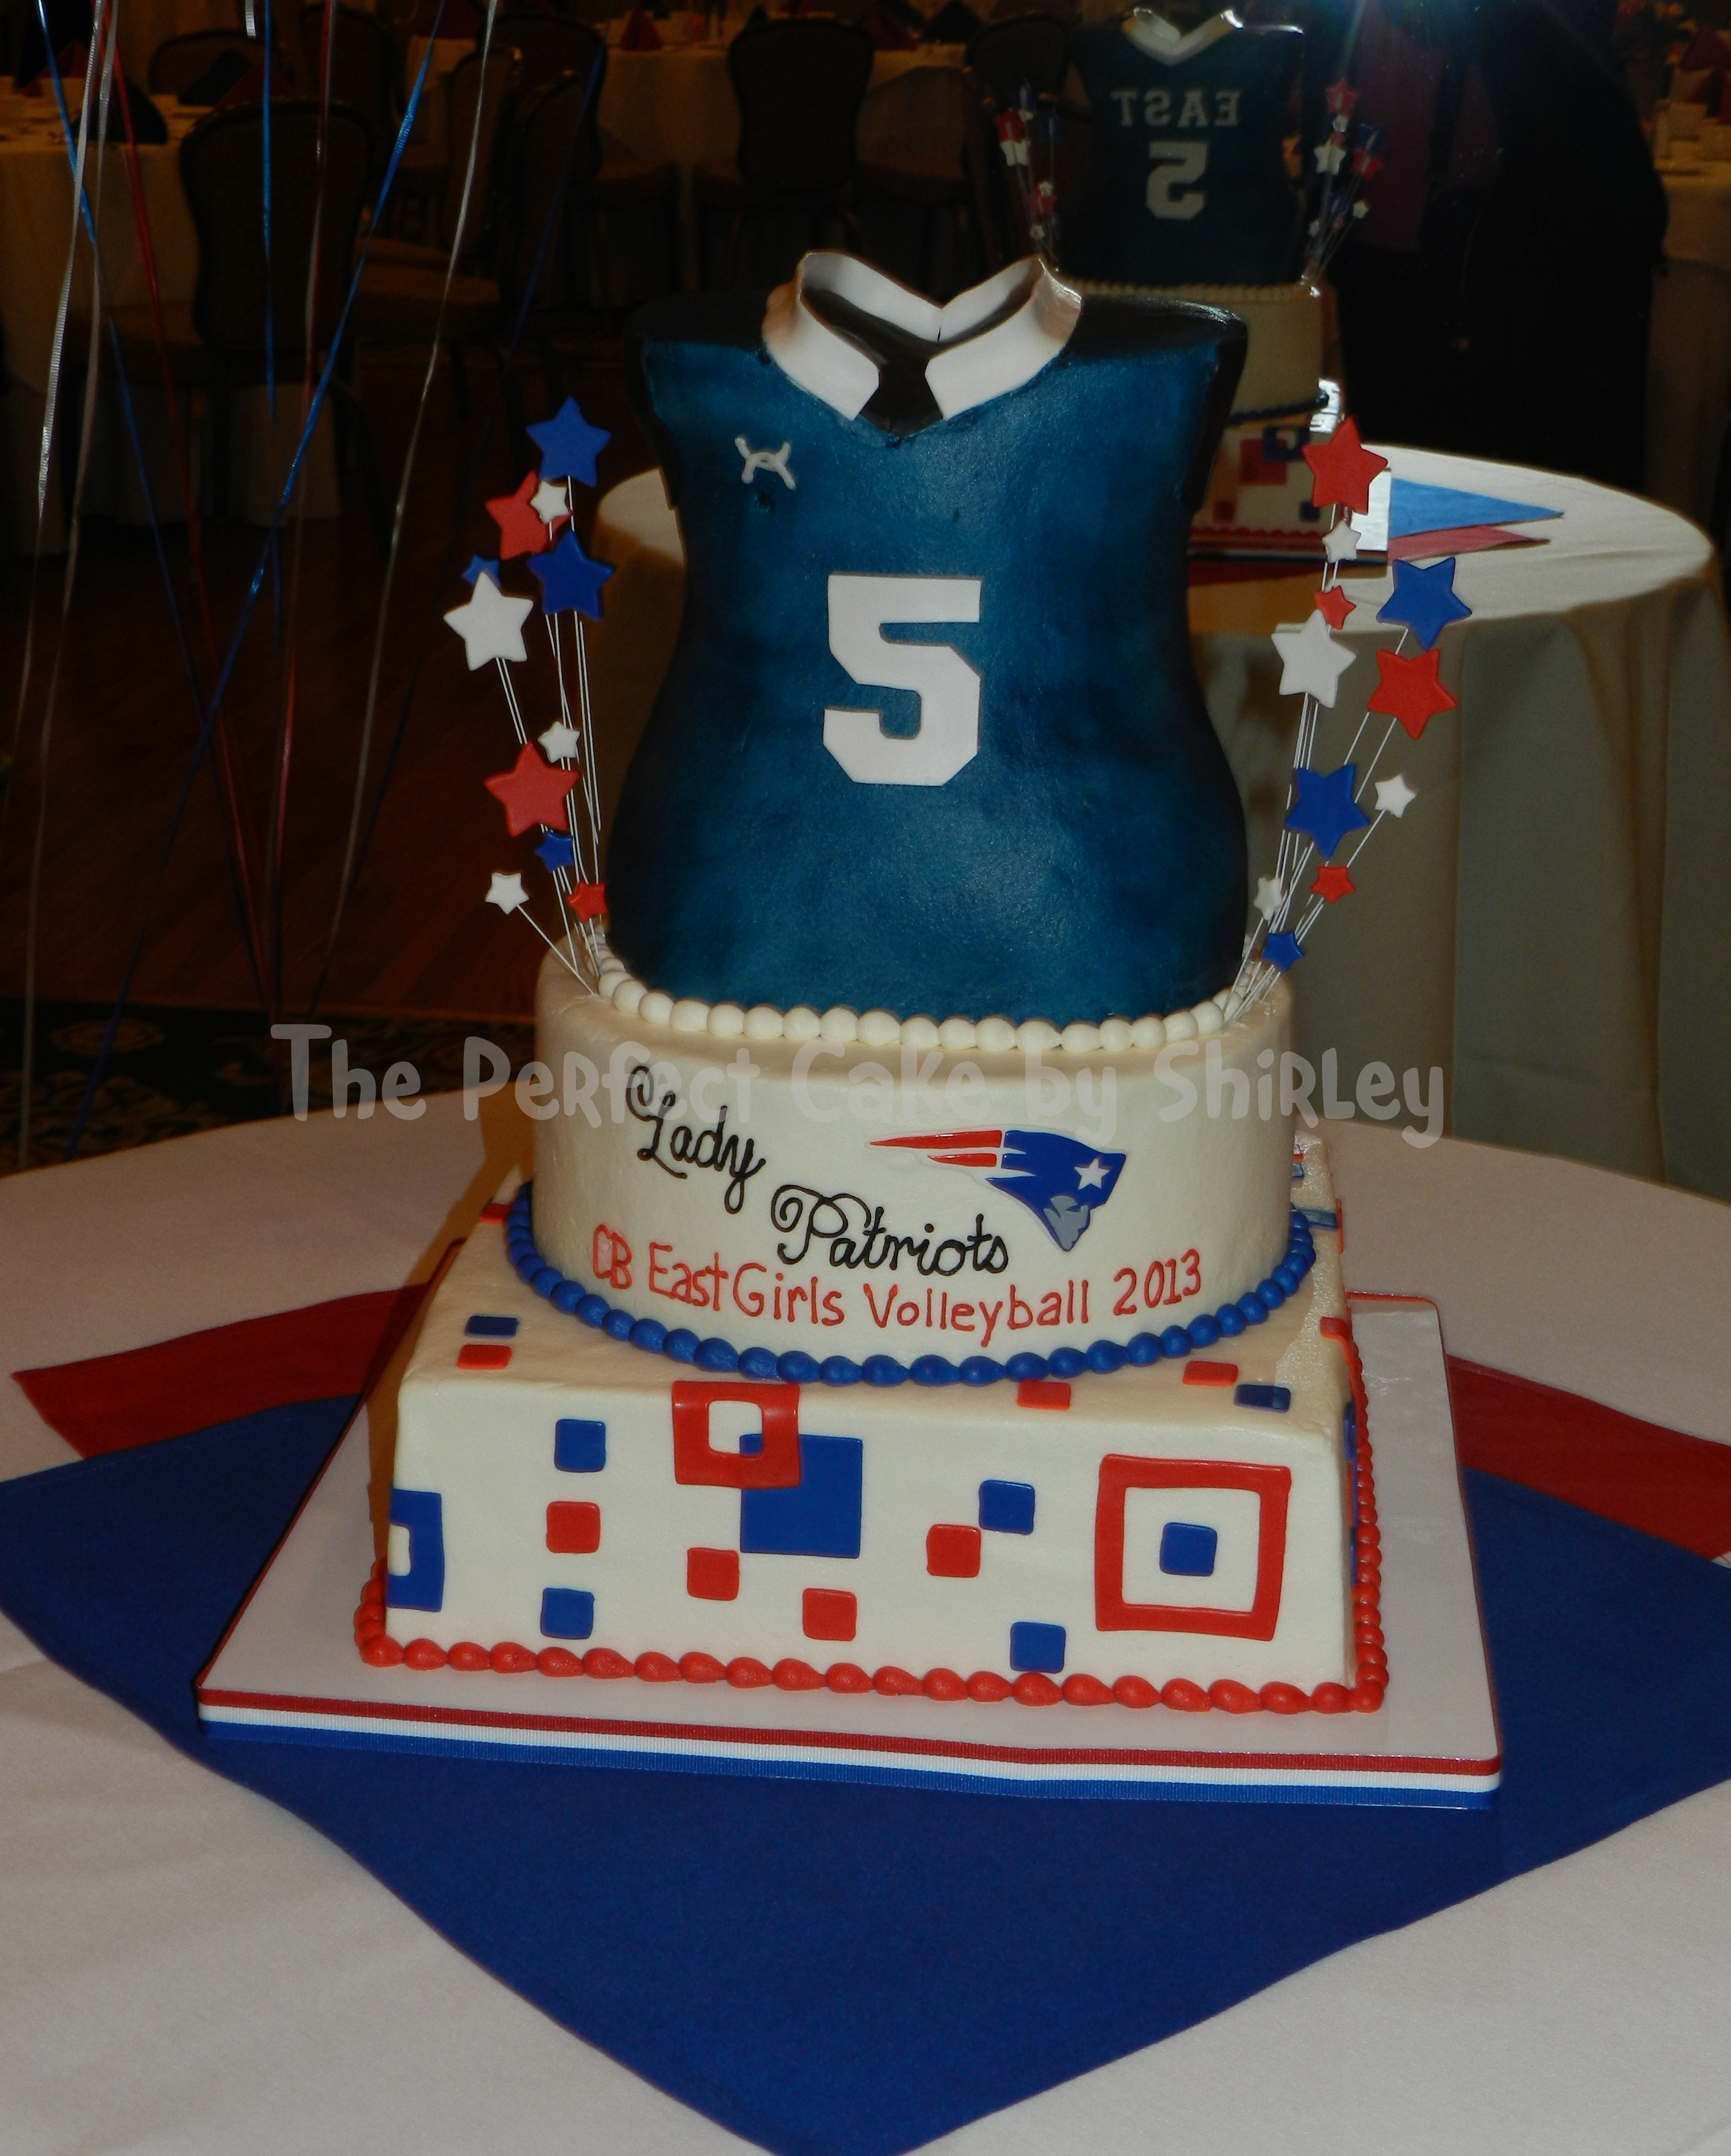 Cb East Girls Volleyball Banquet Cake 3 D Jersey On Top Of Tiered Cake All Cake Iced In Buttercream Jersey Is Airbrushed   CB East Girls Volleyball banquet cake. 3-D jersey on top of tiered cake. All cake, iced in buttercream. Jersey is airbrushed.